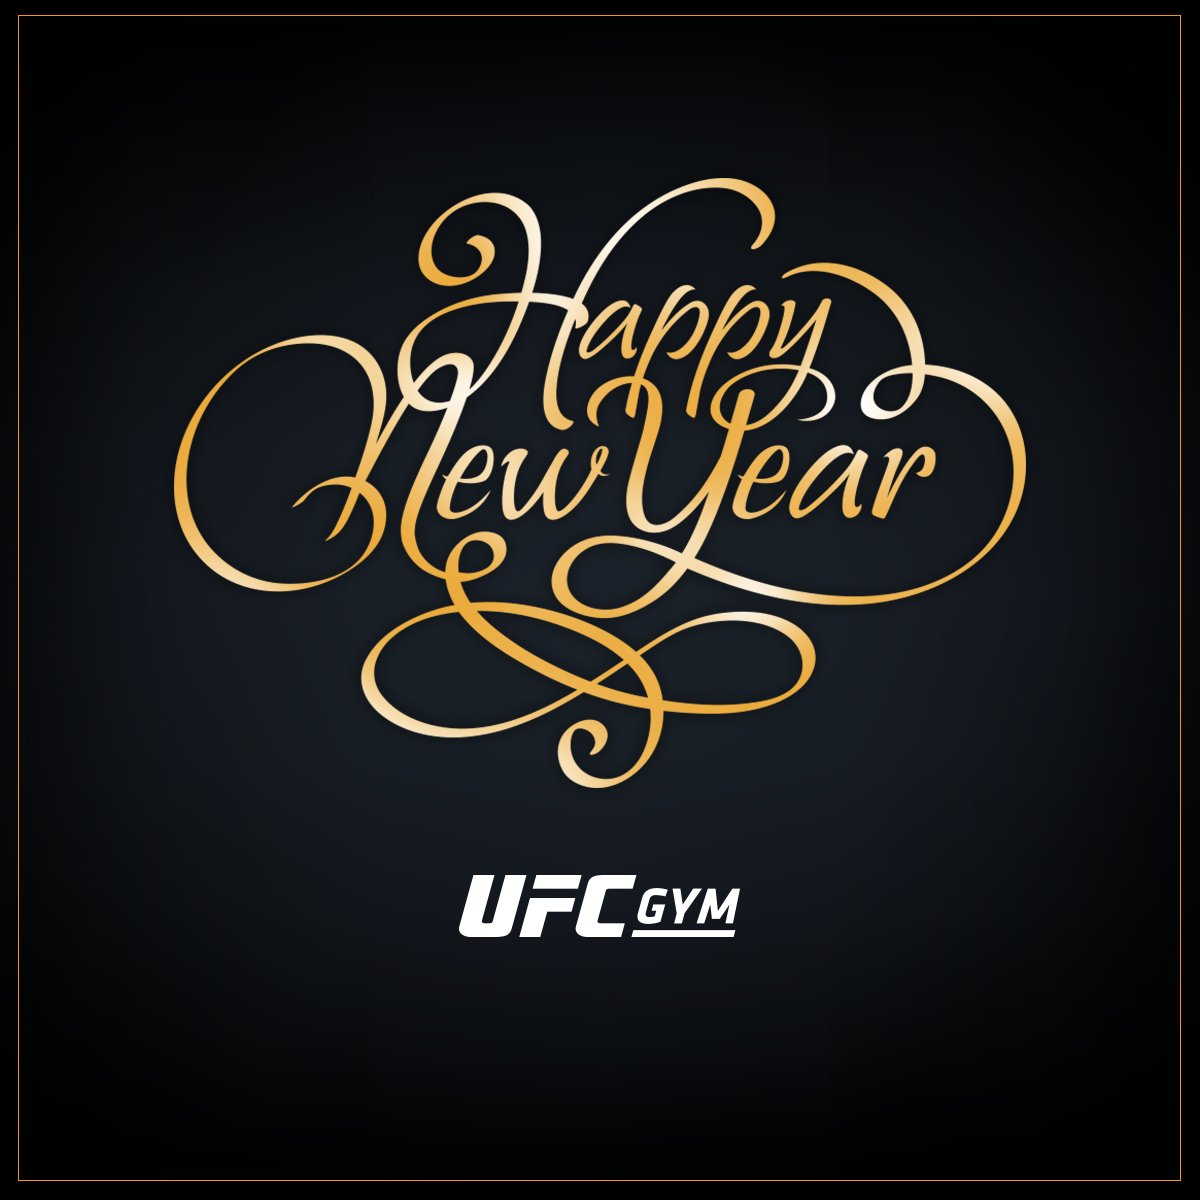 "A Year Of Happiness ufc gym on twitter: ""ufc gym wishes you a year of happiness"